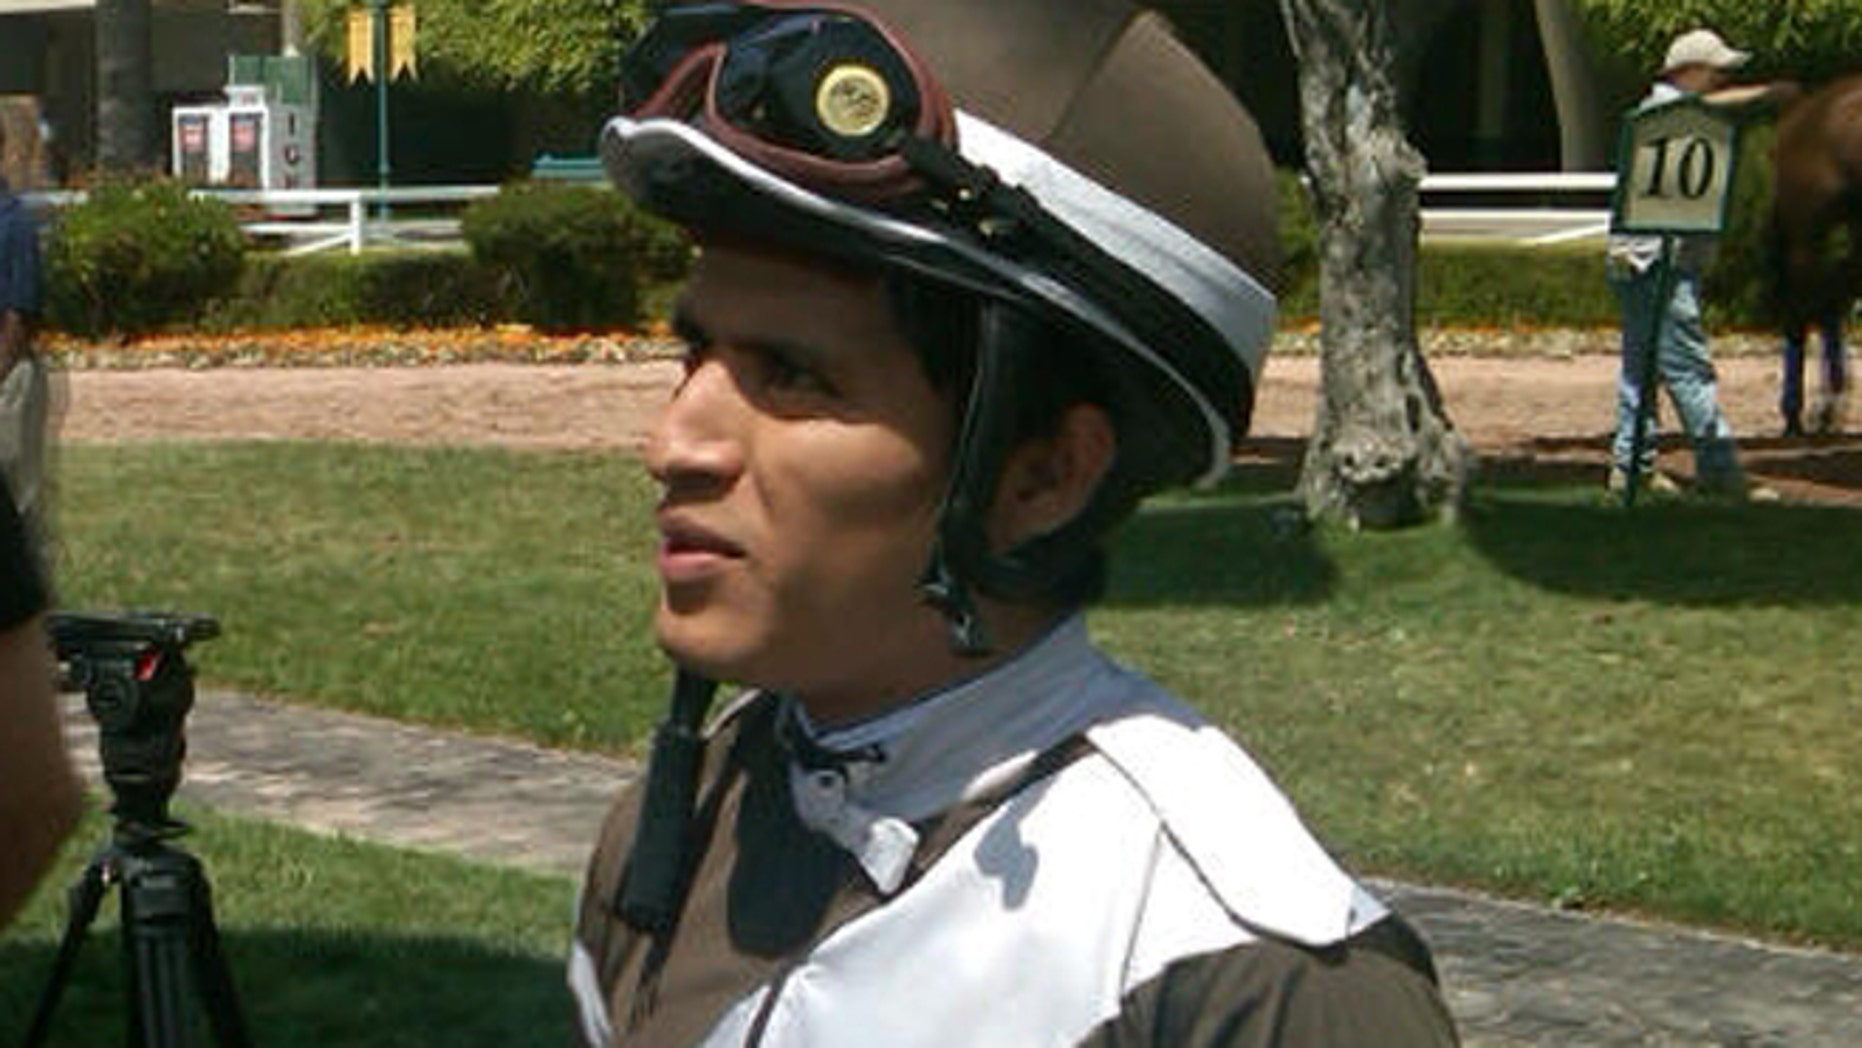 Mario Gutierrez will ride I'll Have Another on Saturday with a shot at racing's Triple Crown.